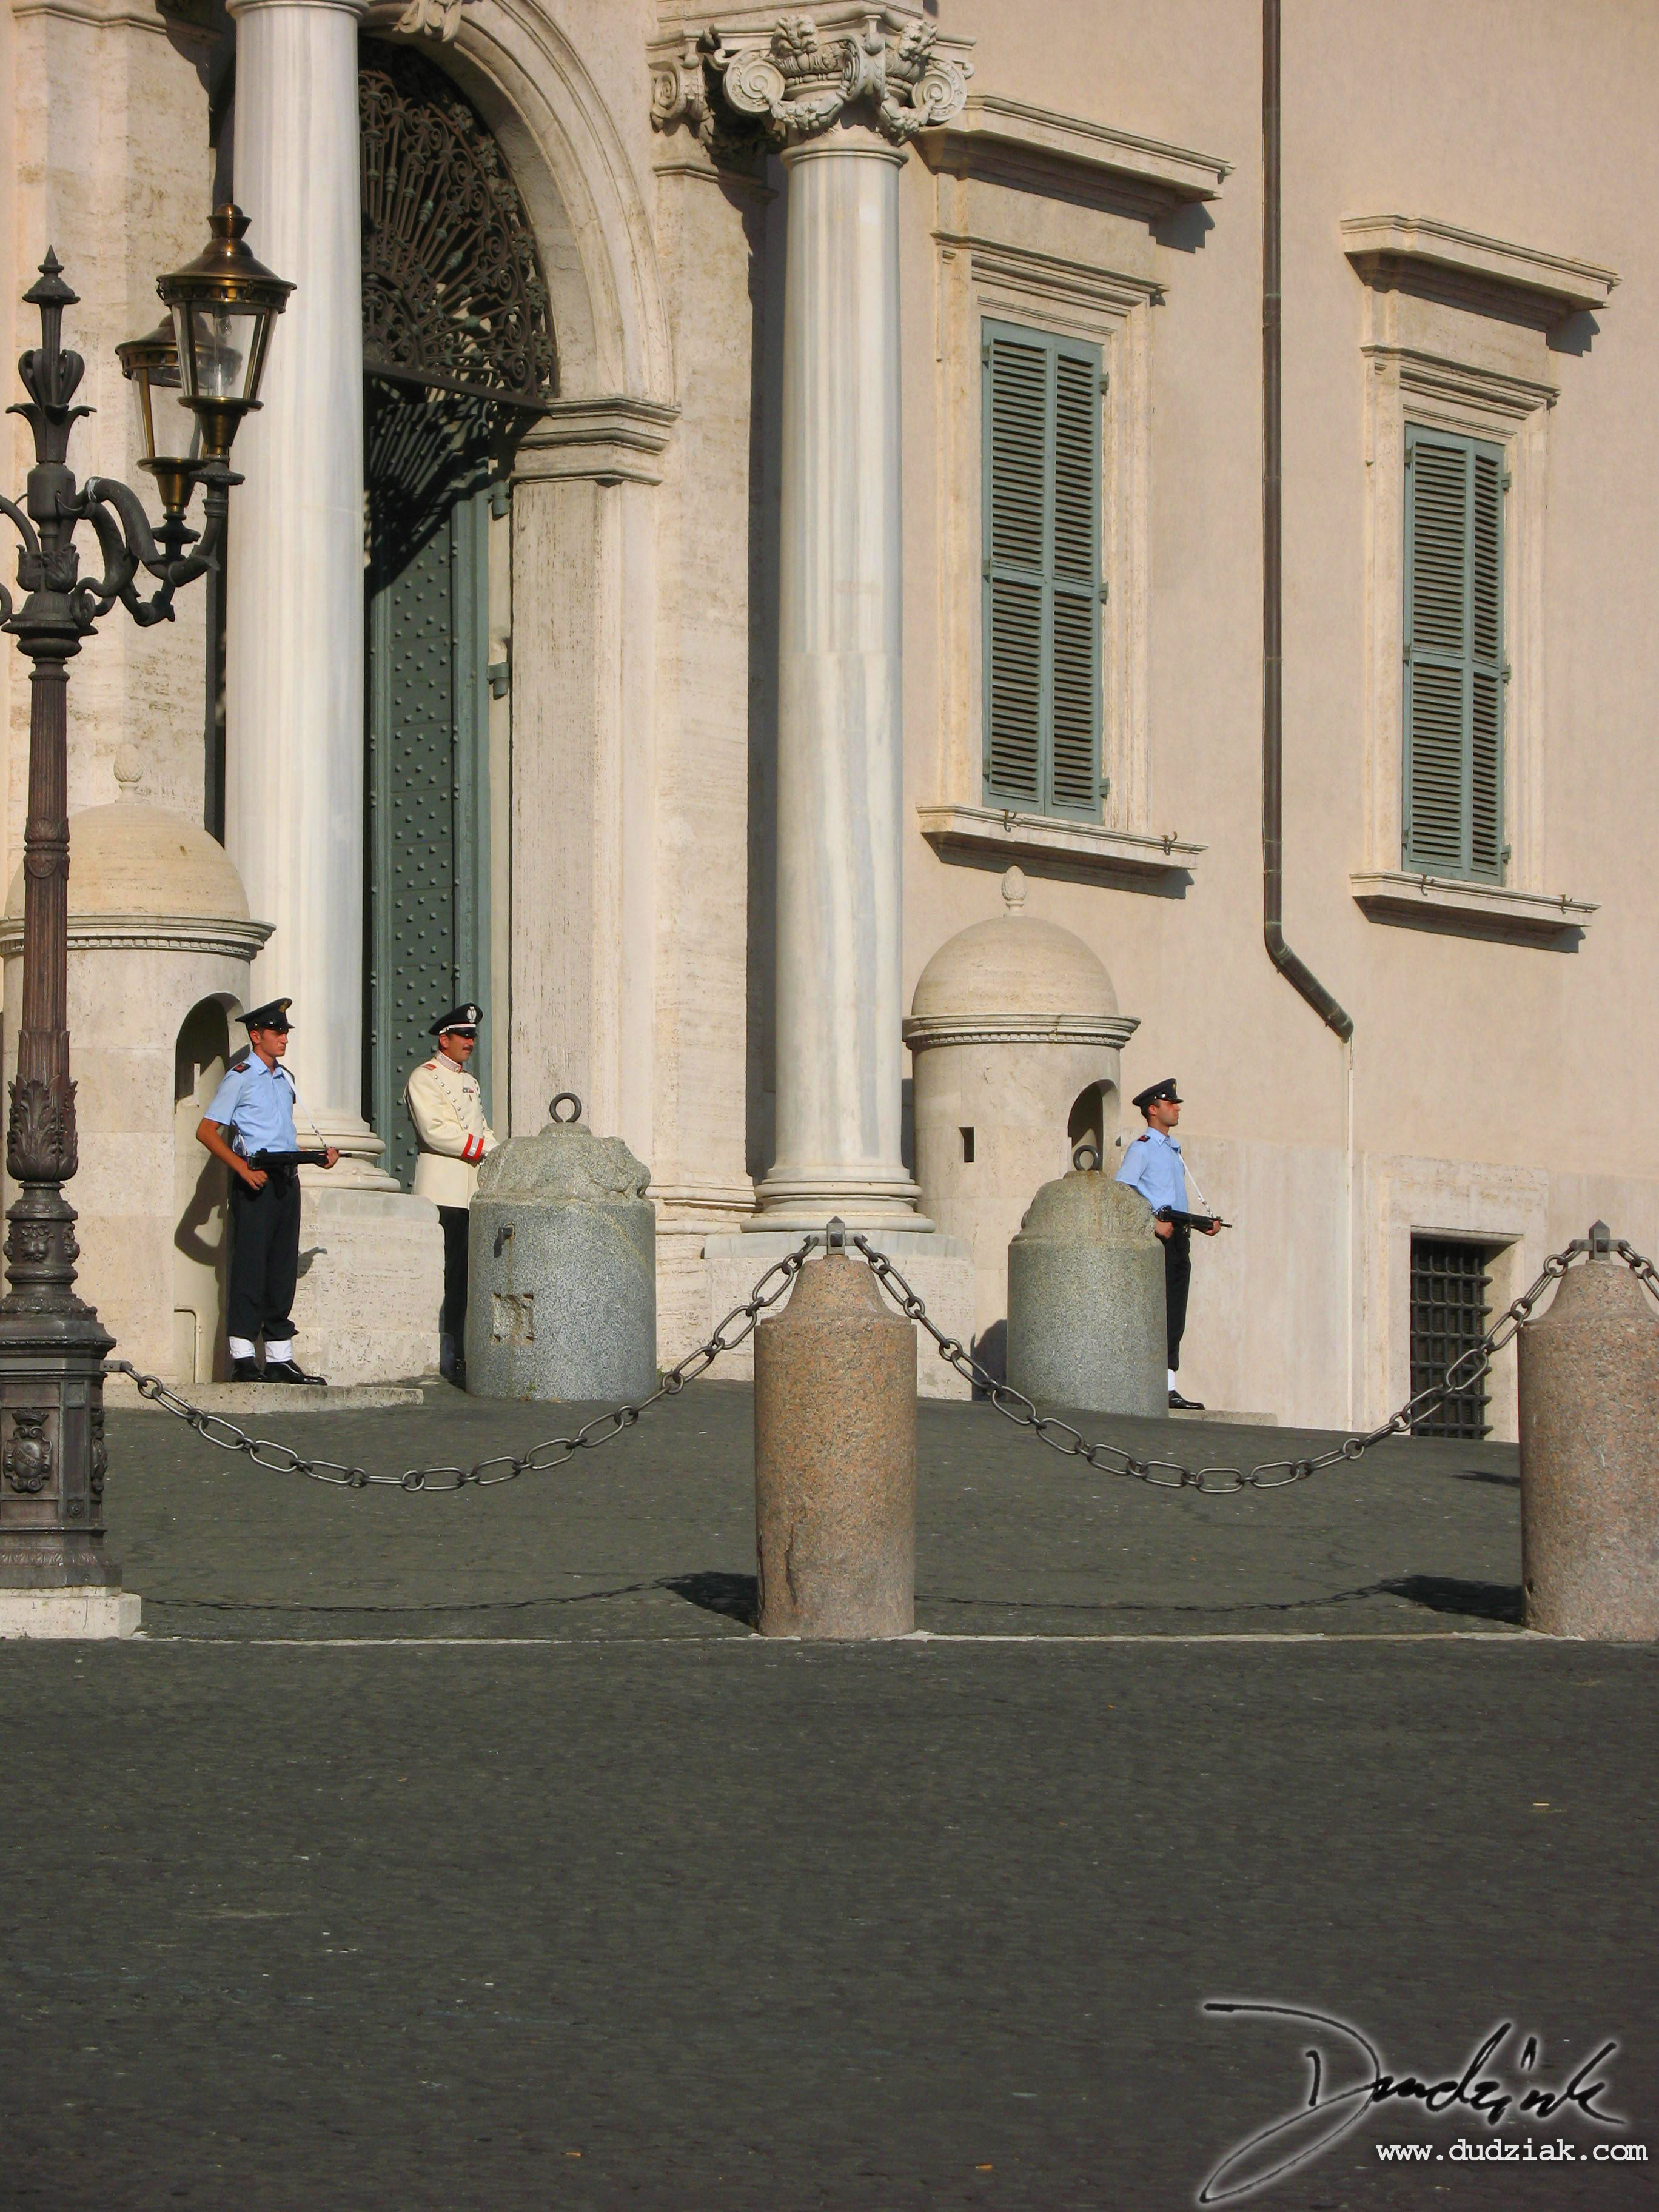 soldiers,  Roma,  Rome,  Italy,  Italian Soldiers,  Palazzo Quirinale